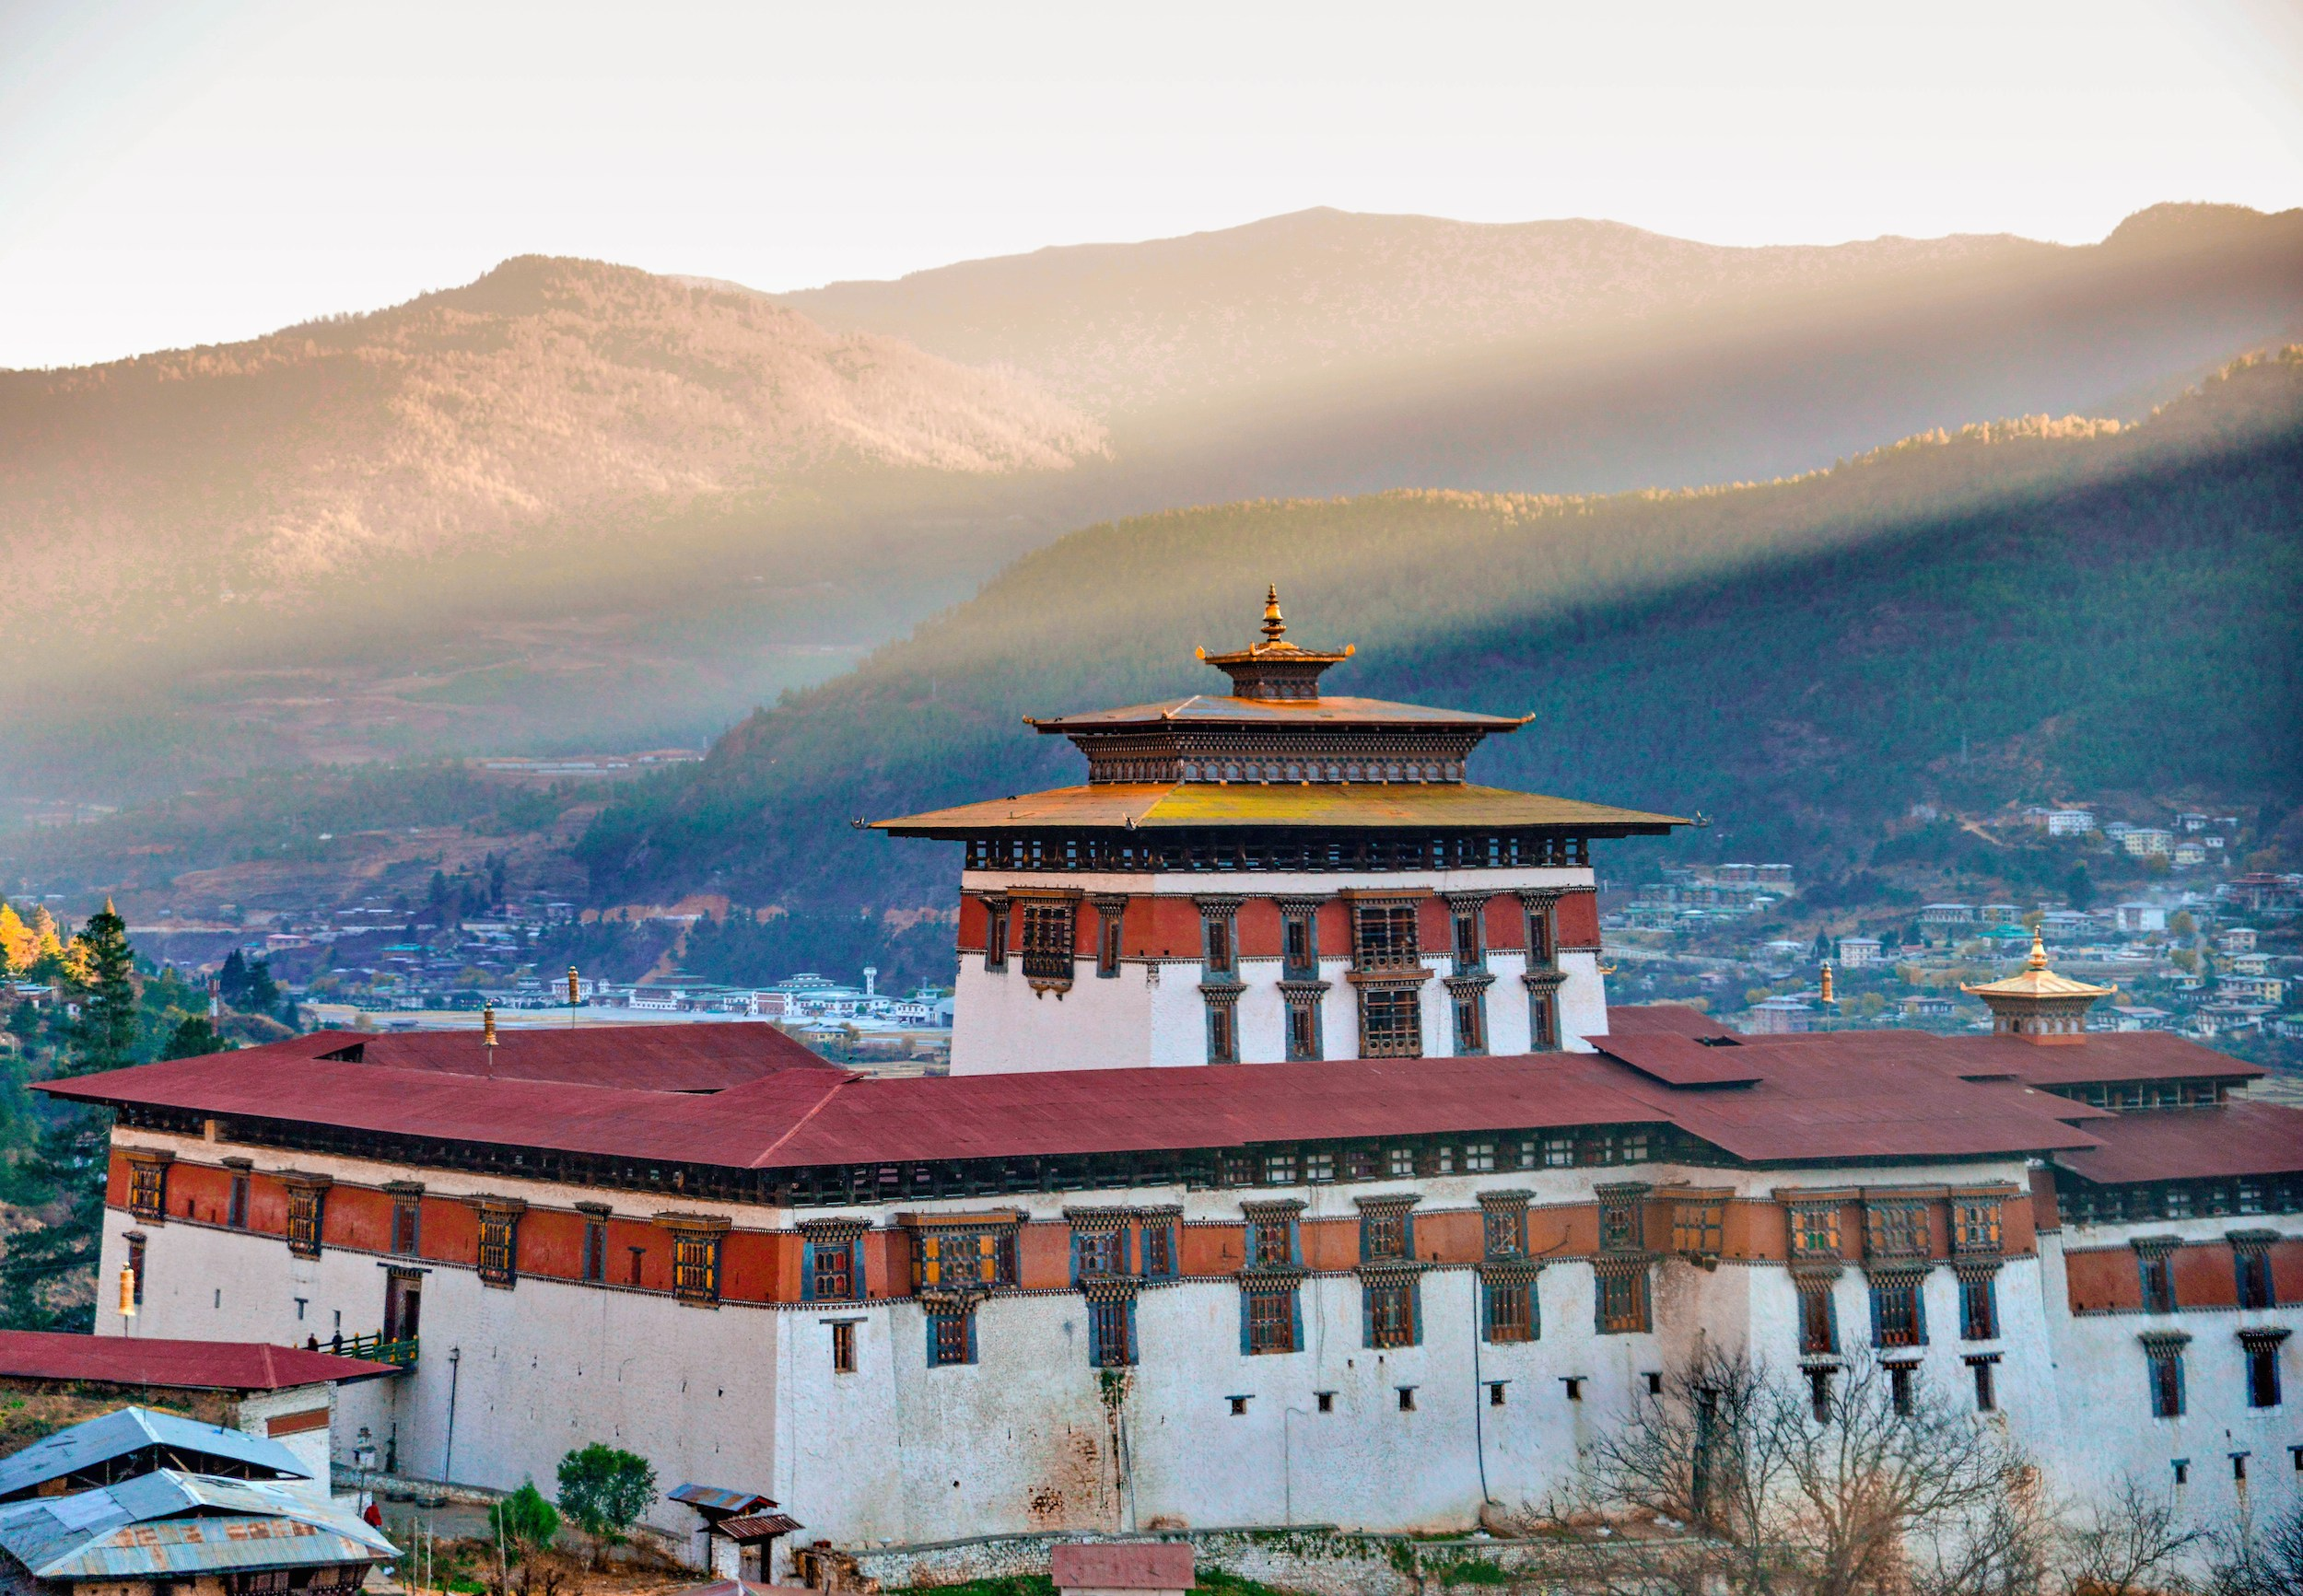 A red and white fortress-like Bhutanese building and a town in the valley beyond it with sunlight streaming between the hills behind it in Bhutan